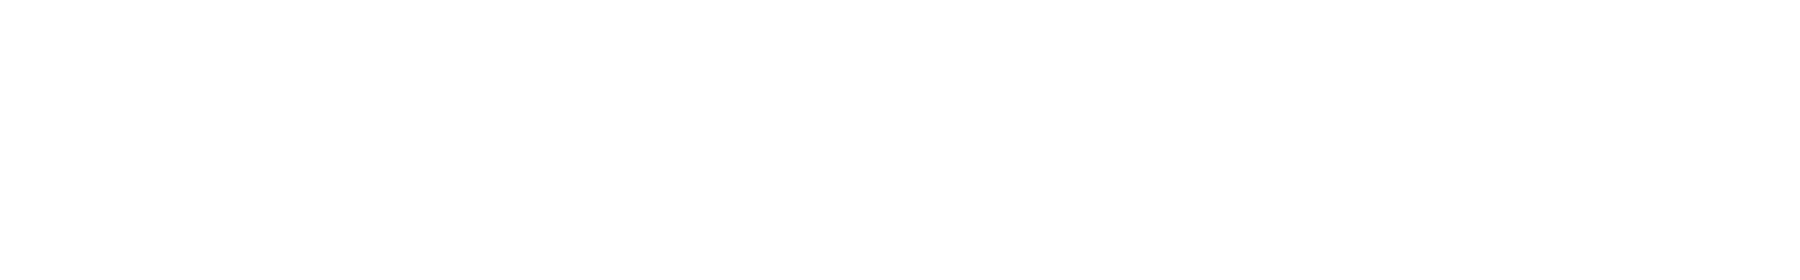 snare18